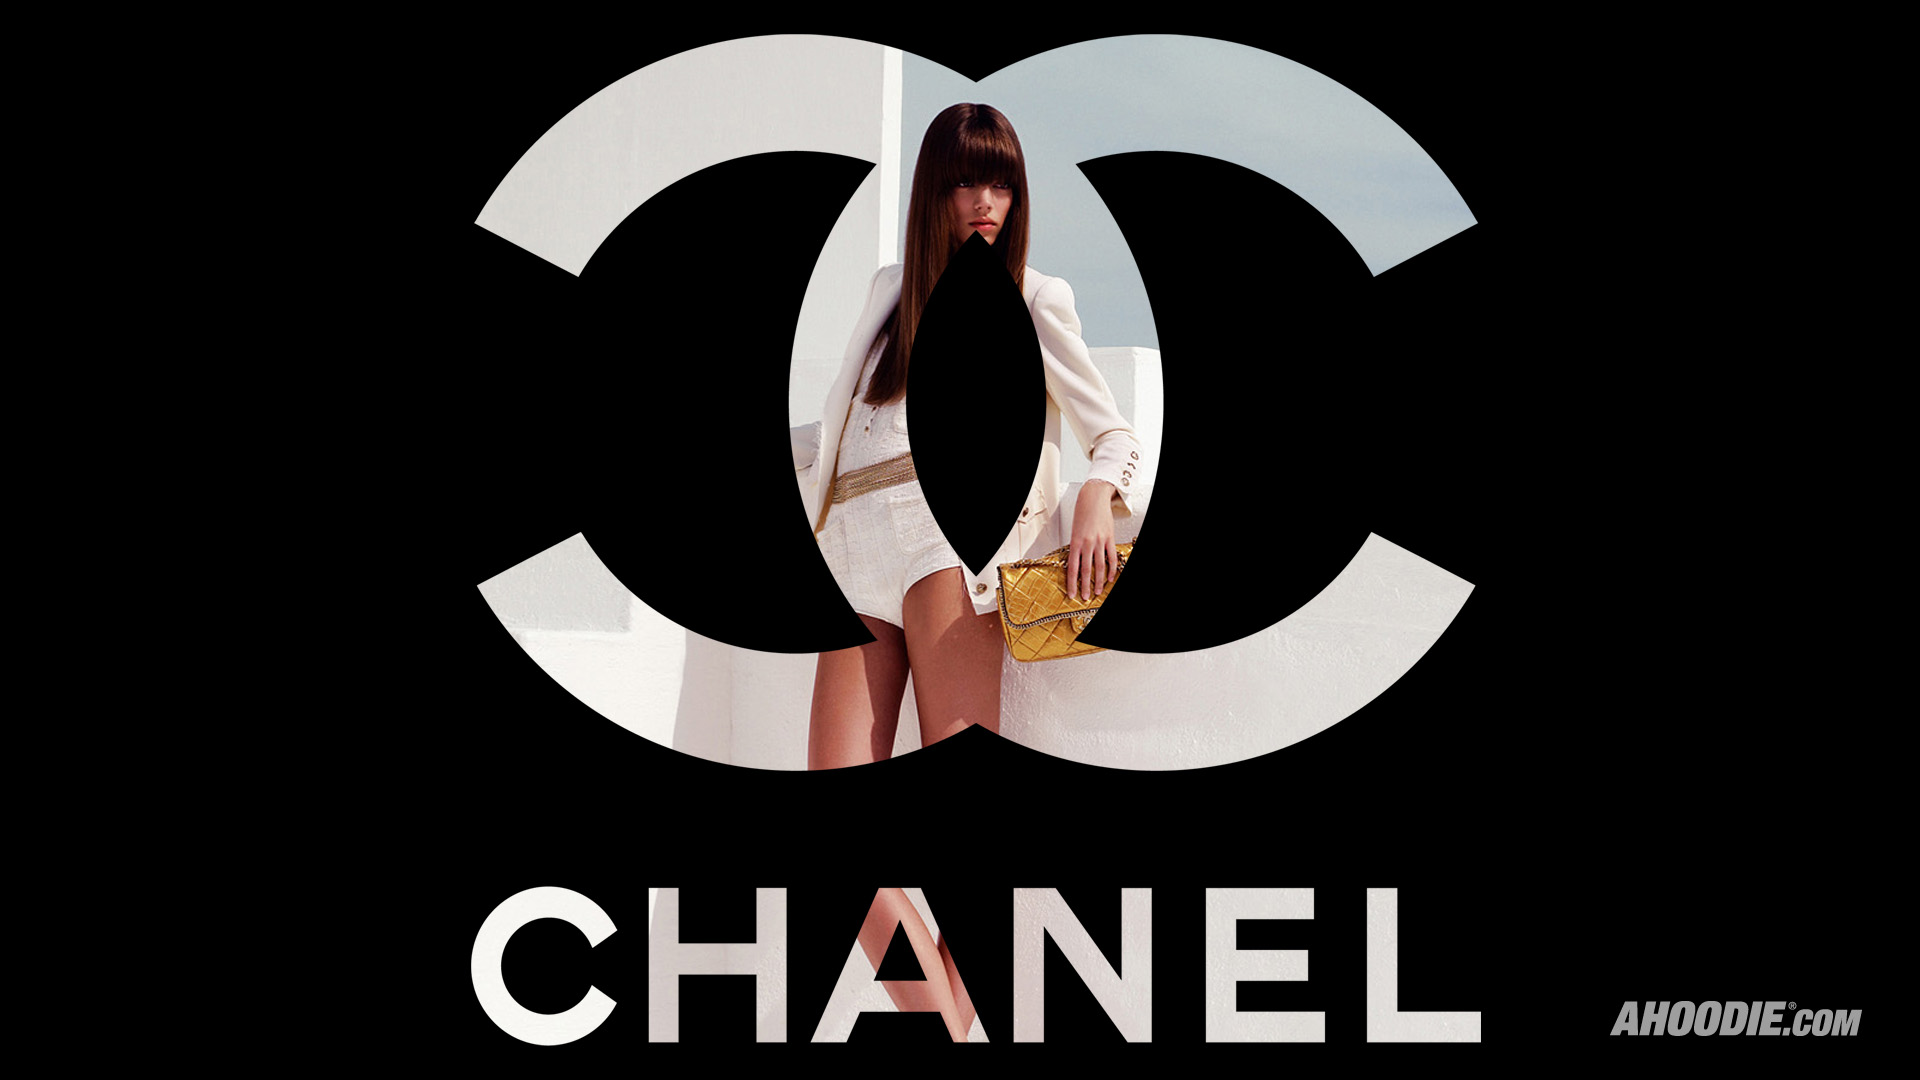 Chanel Wallpapers Archives - Page 2 of 4 - HD Desktop ...